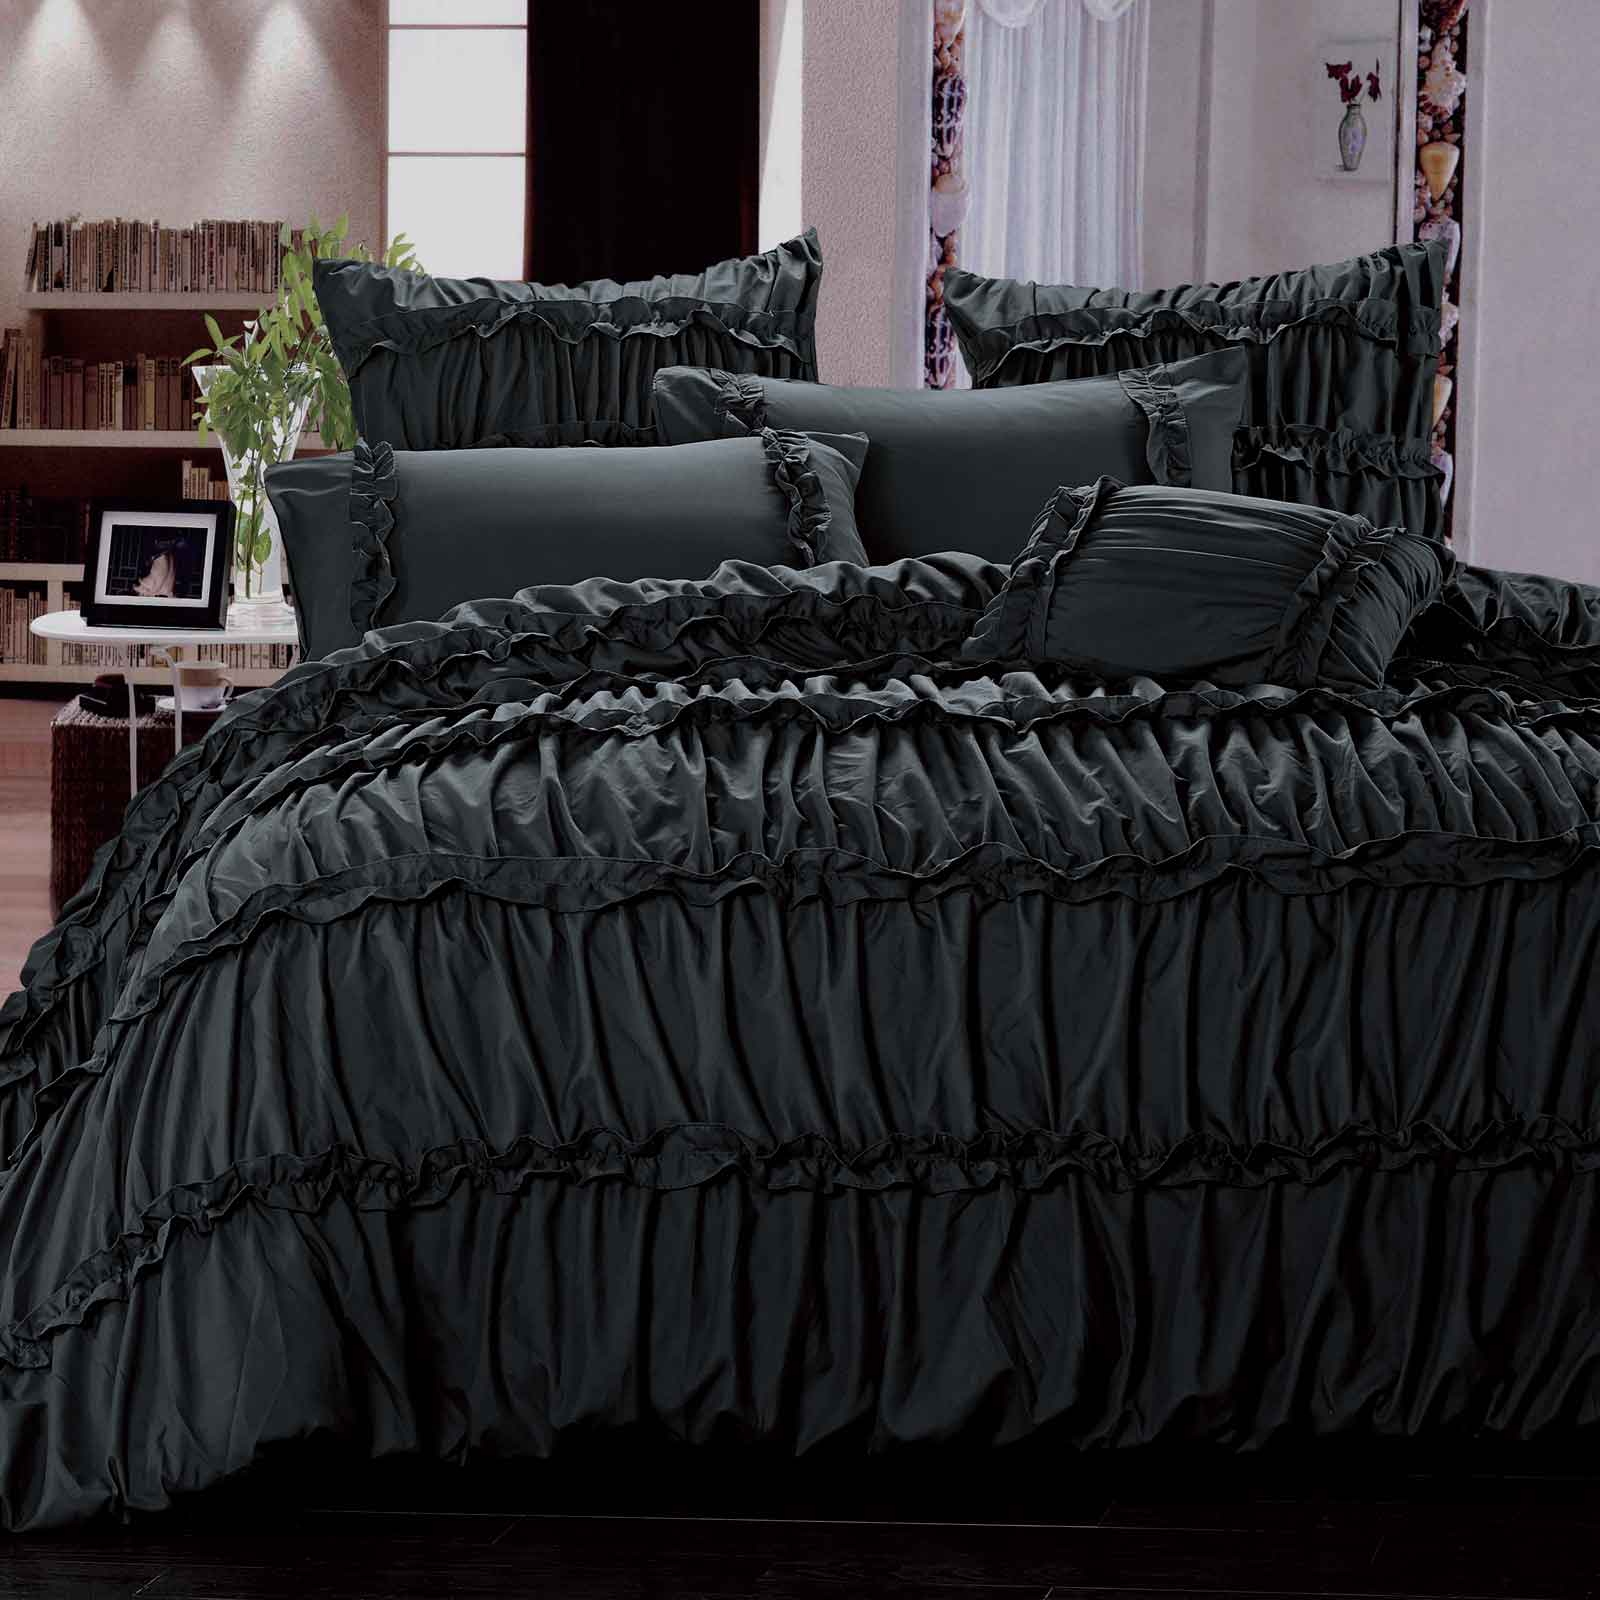 Charlotte King Queen Size Duvet Quilt Cover Set Black 3pcs Bedding Set Bed Linen Ebay